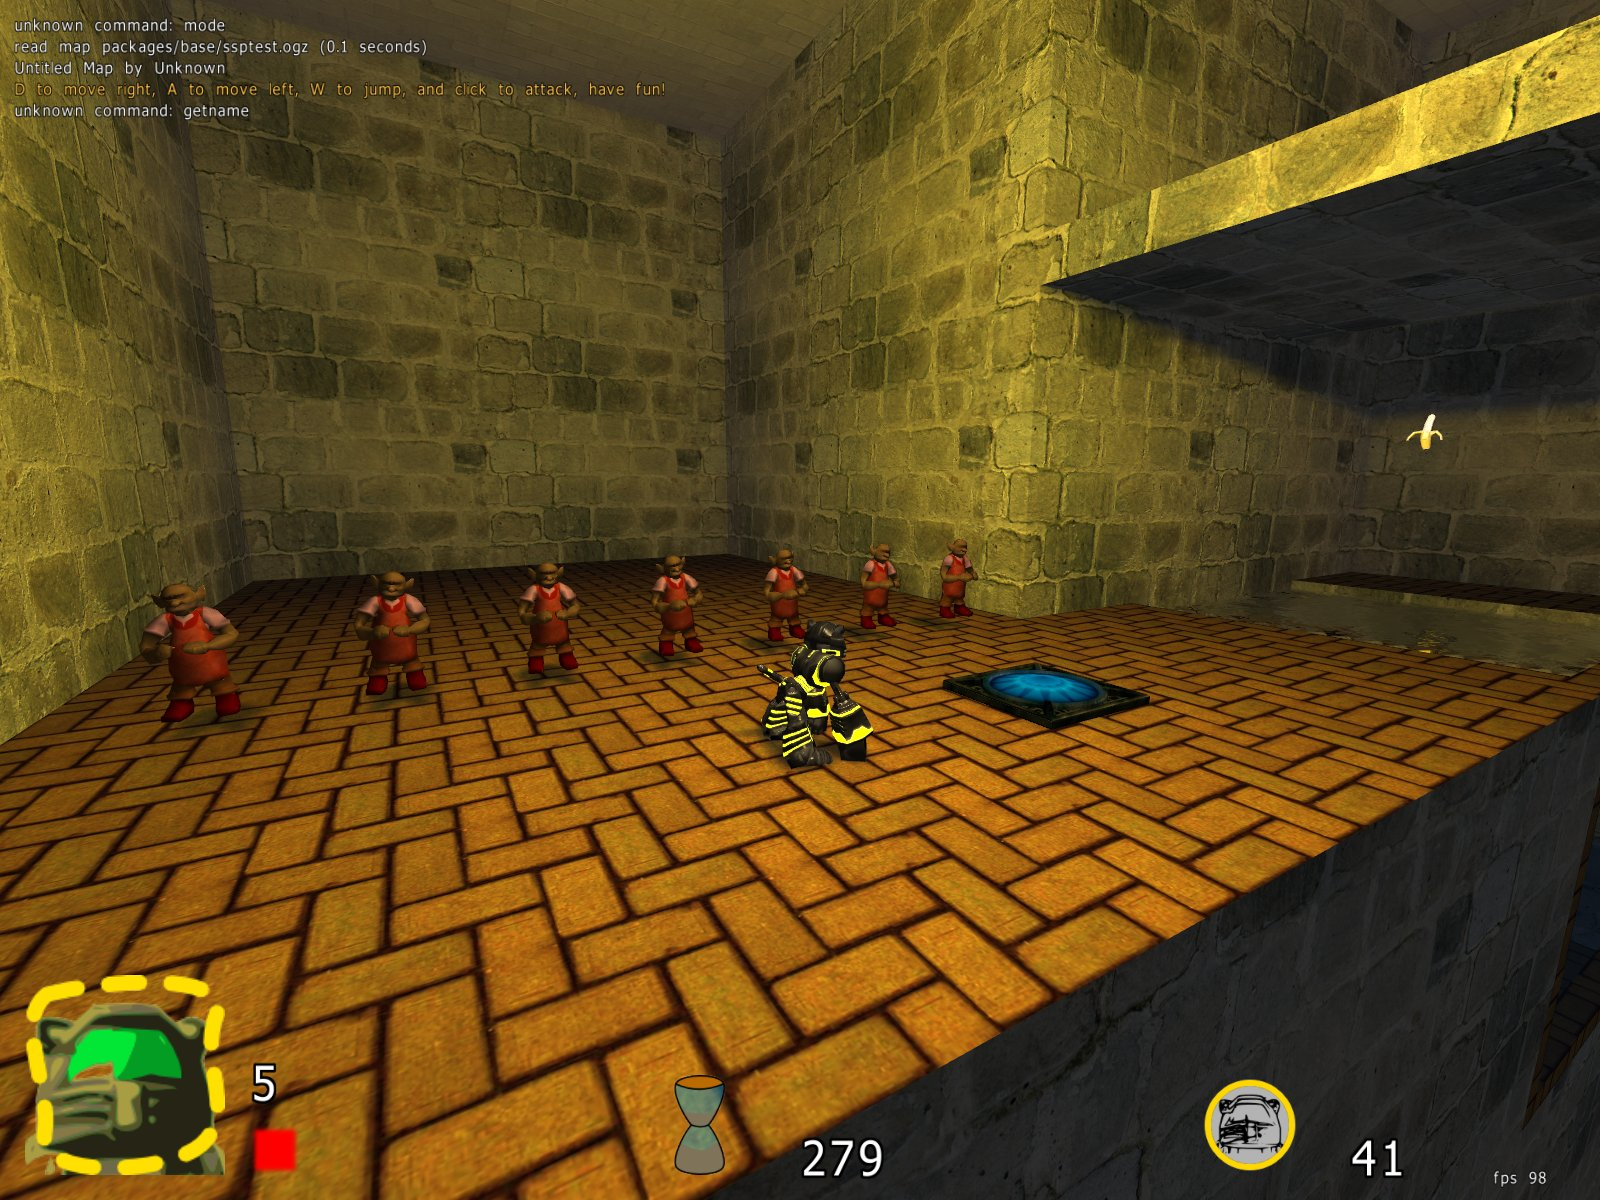 Download 3D Game Builder 8.4.4 for free